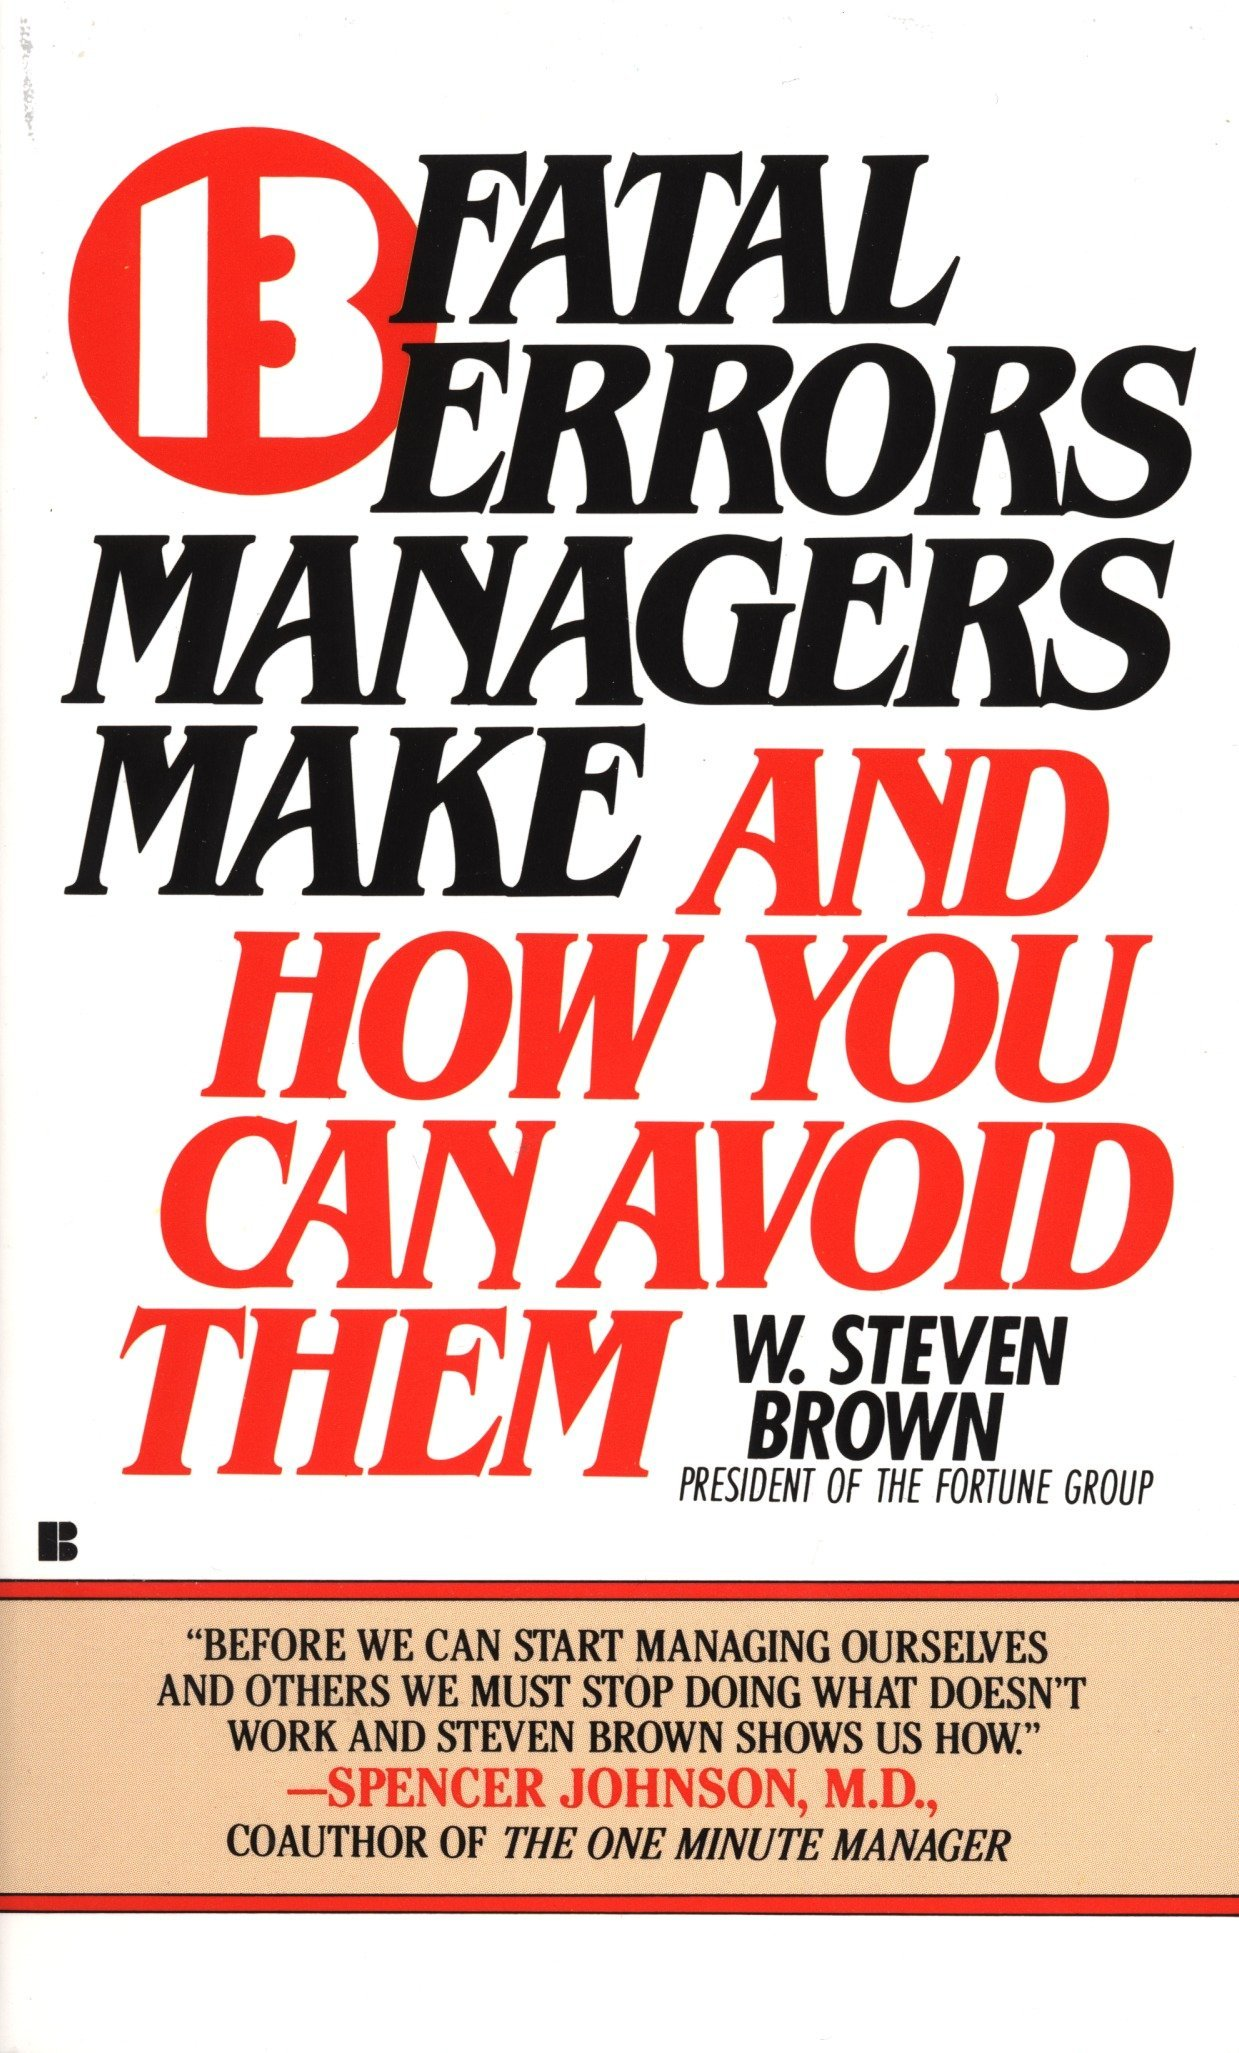 13 fatal errors managers make and how you can avoid them: W. Steven Brown:  9780425096444: Amazon.com: Books